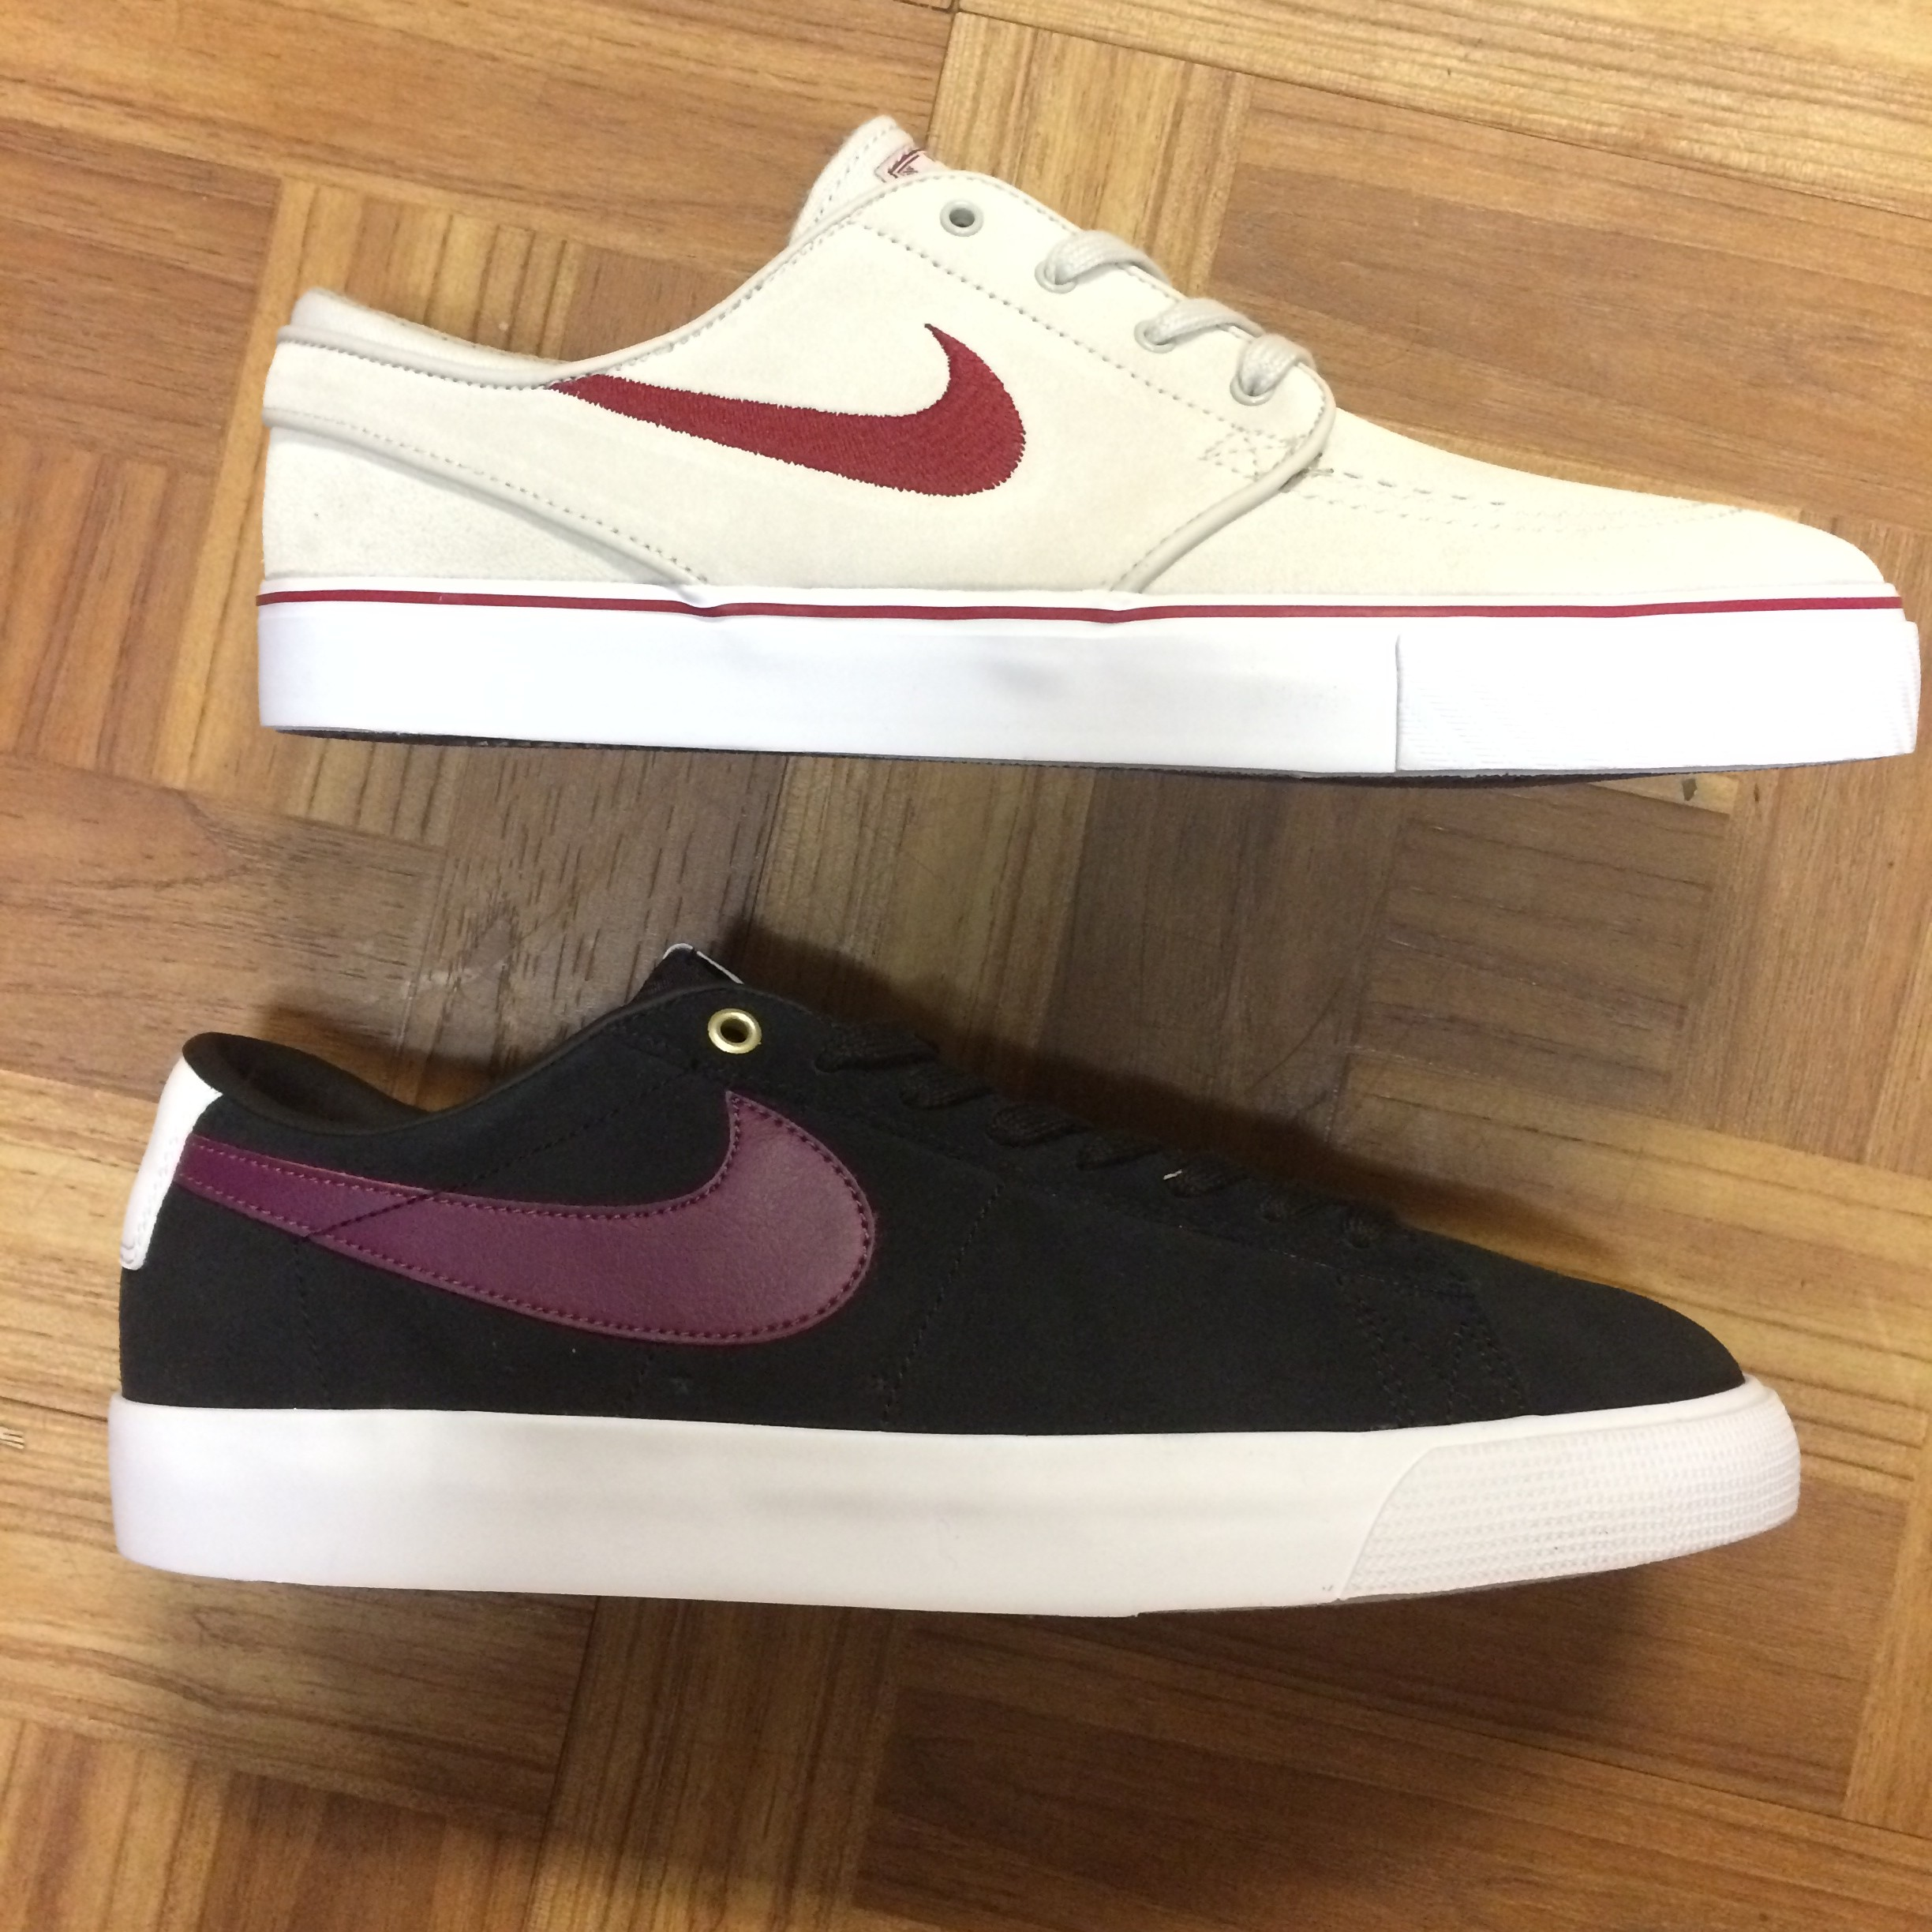 online retailer 577b4 96e2a New From Nike SB At Our Harford Rd Location Is The Janoski ...